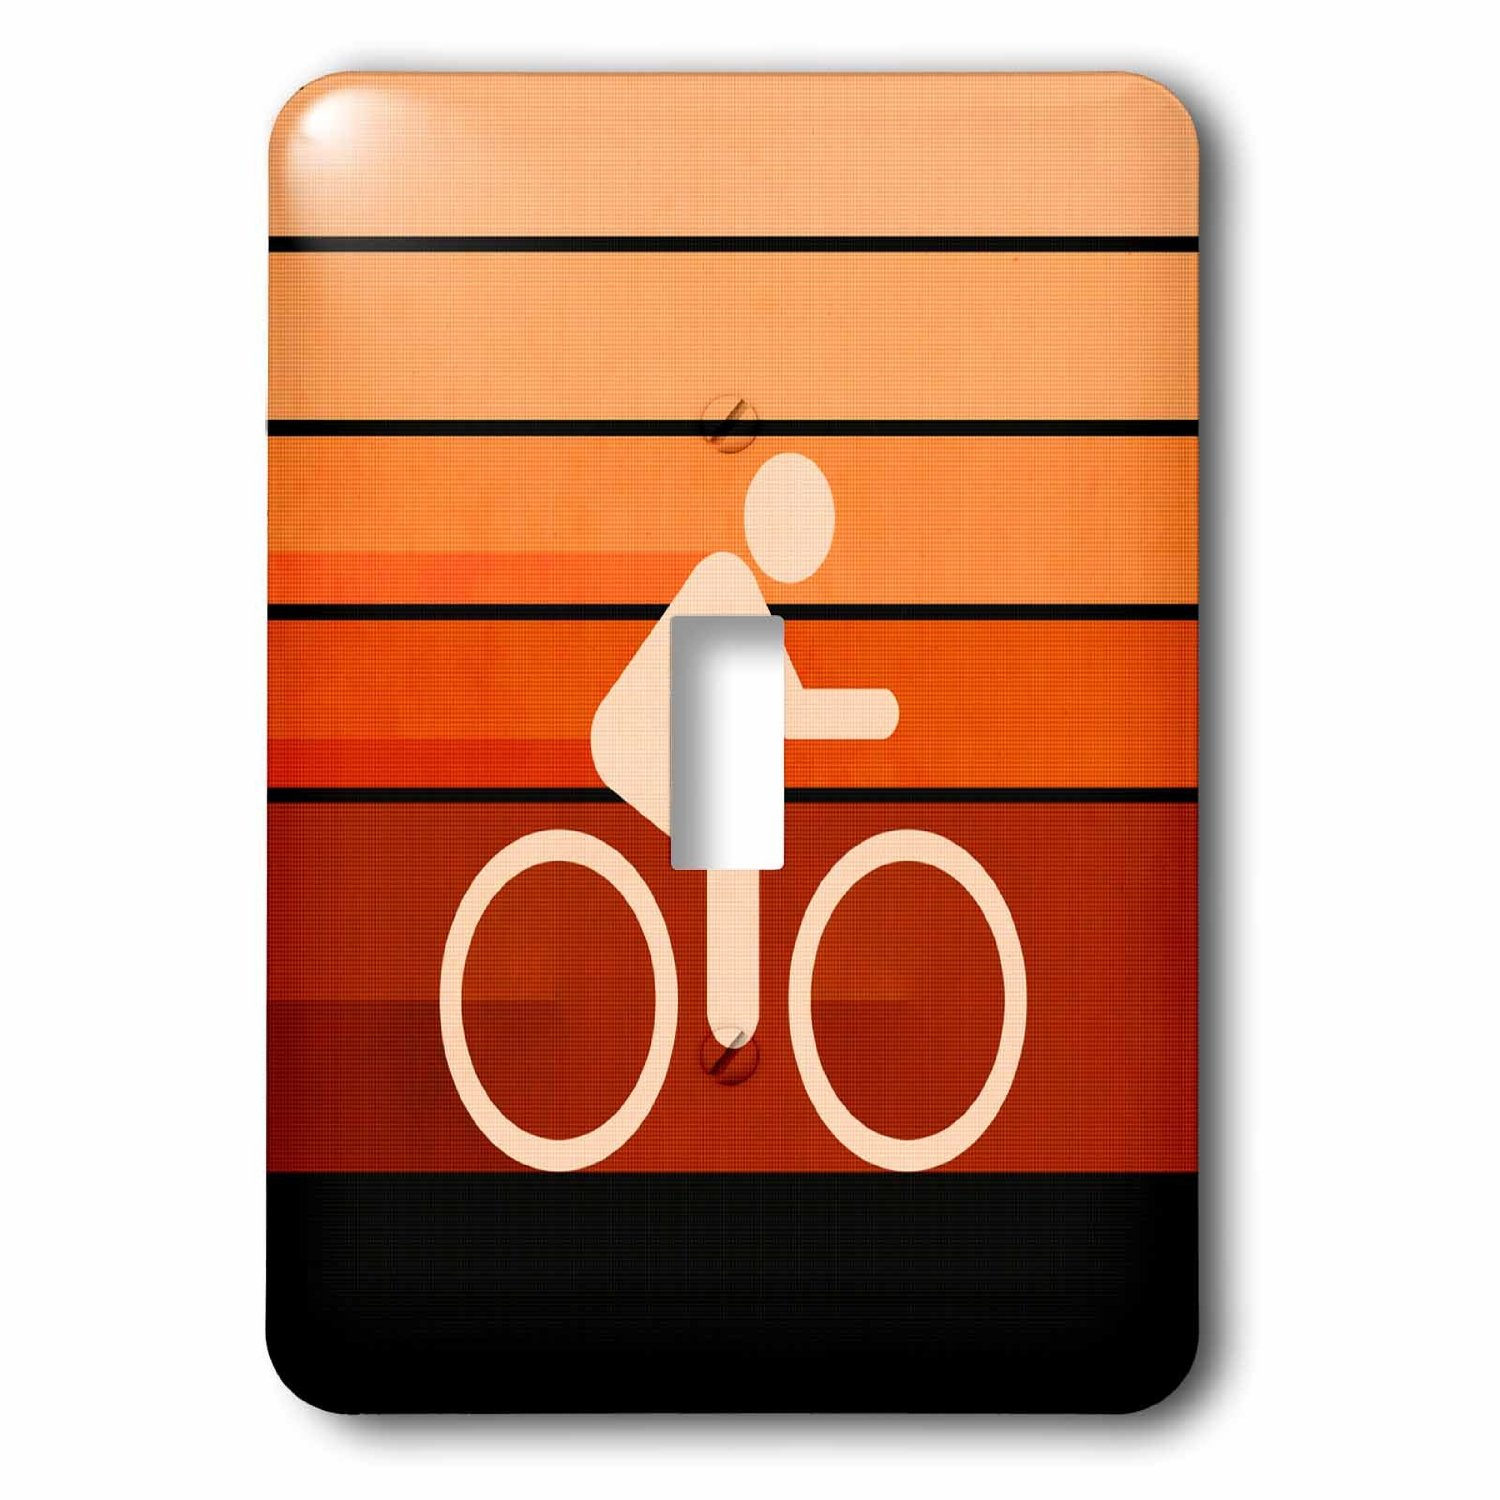 Image of 3dRose Biking Orange - colorful textured graphic design promoting biking, Single Toggle Switch